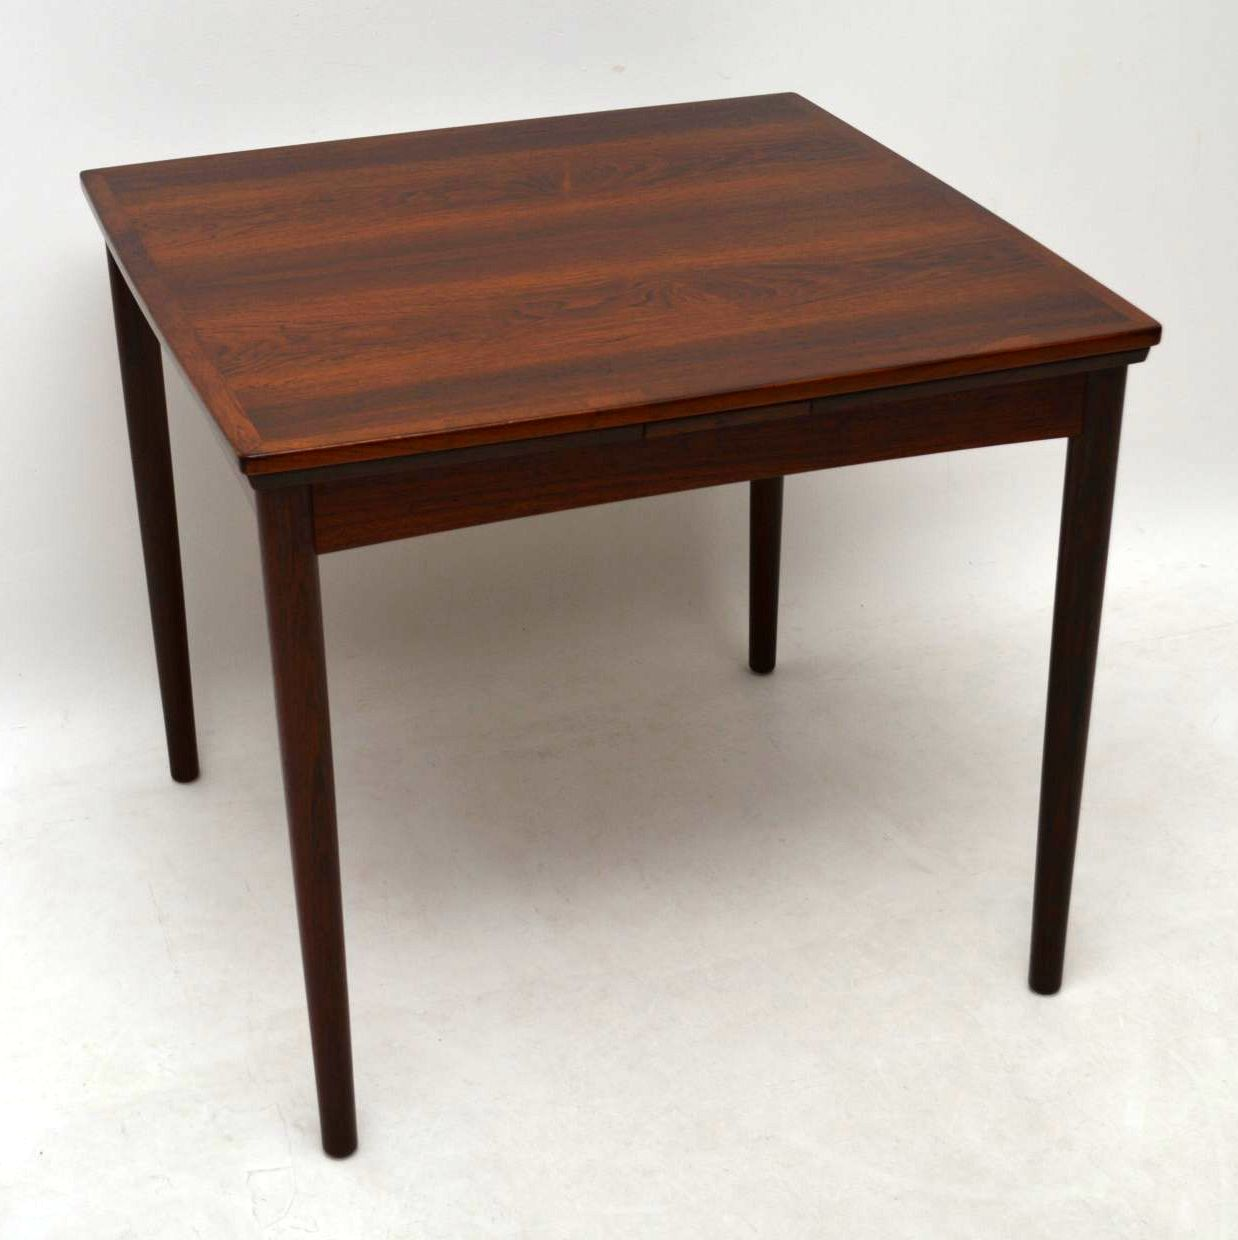 1960 S Danish Rosewood Retro Dining Table By Poul Hundevad